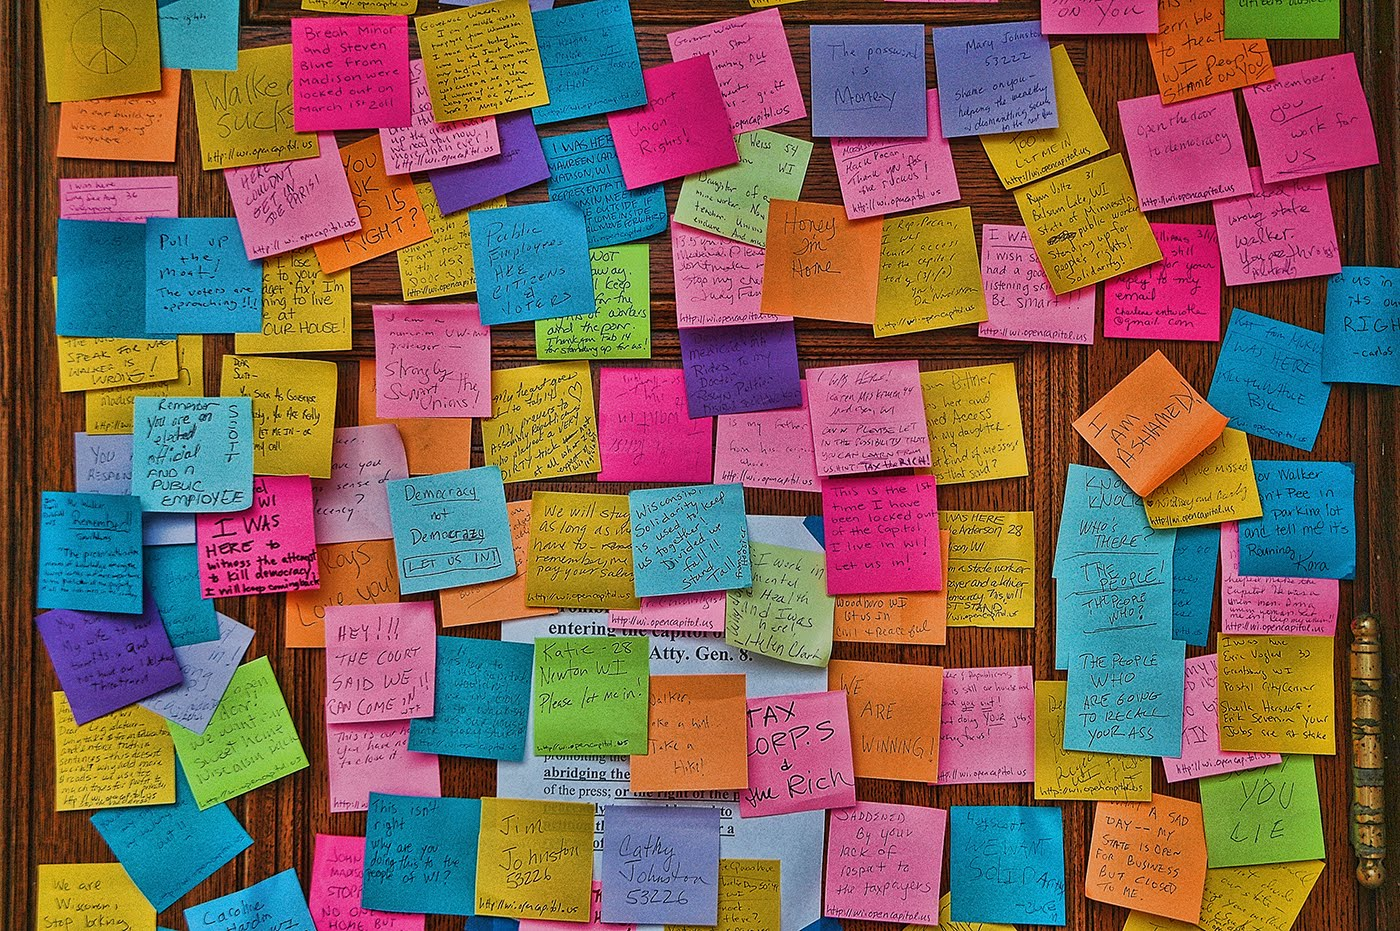 Pursuing Fate And Inevitability Notes On The Wall